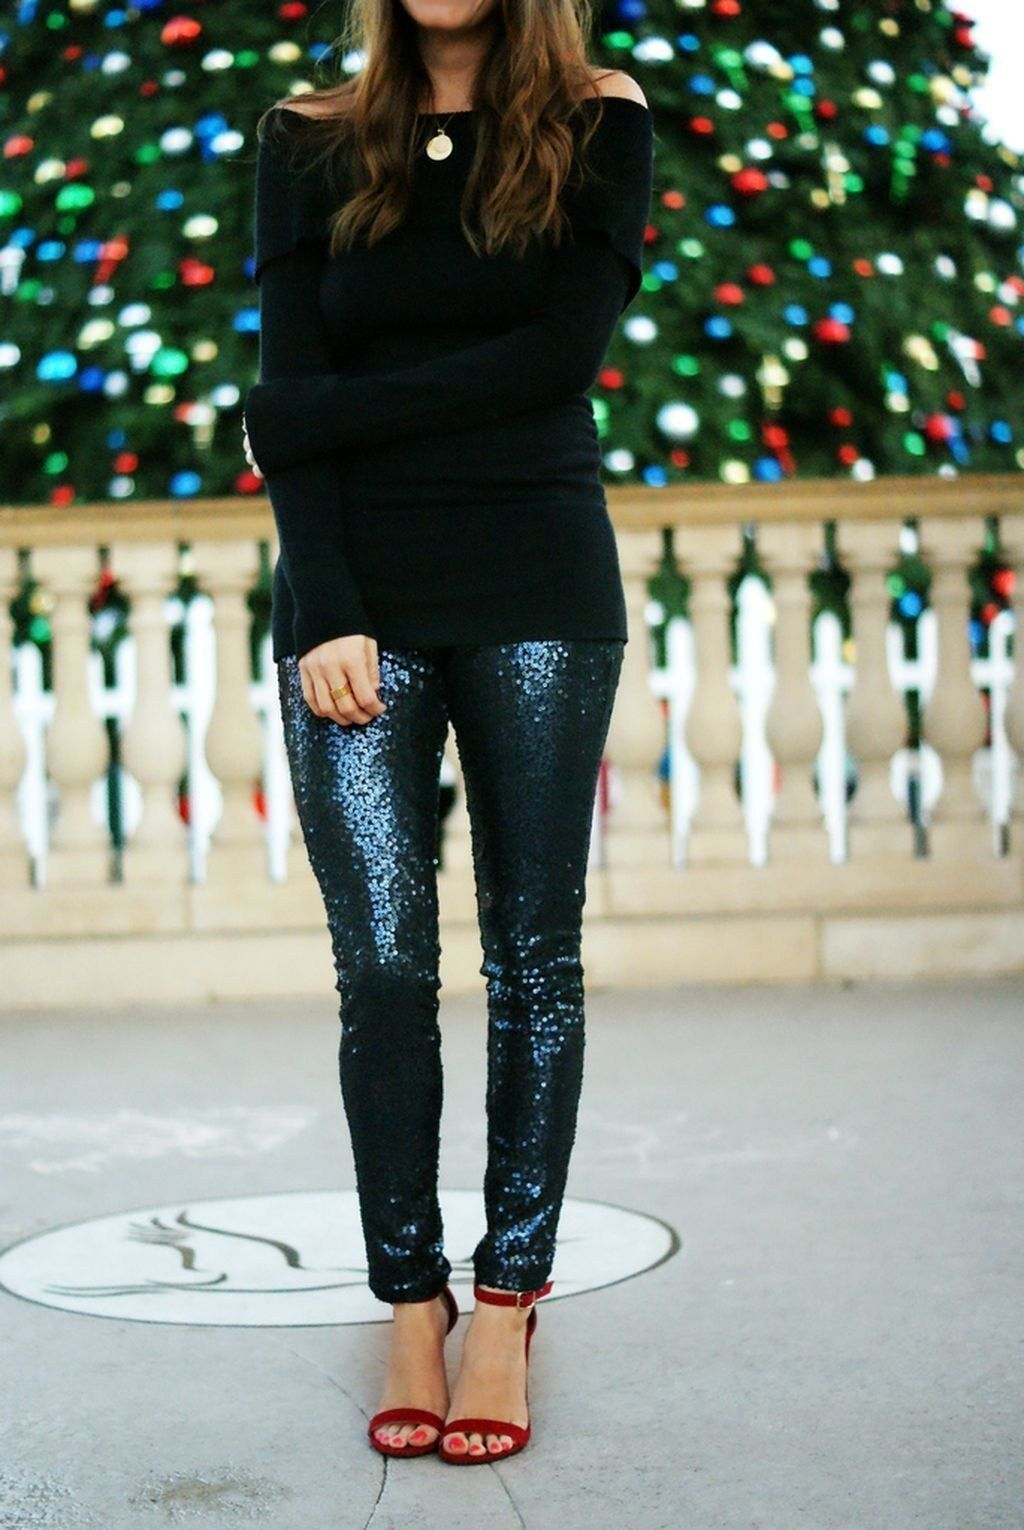 21 Cute Outfits to Copy This Winter 21 Cute Outfits to Copy This Winter new pics